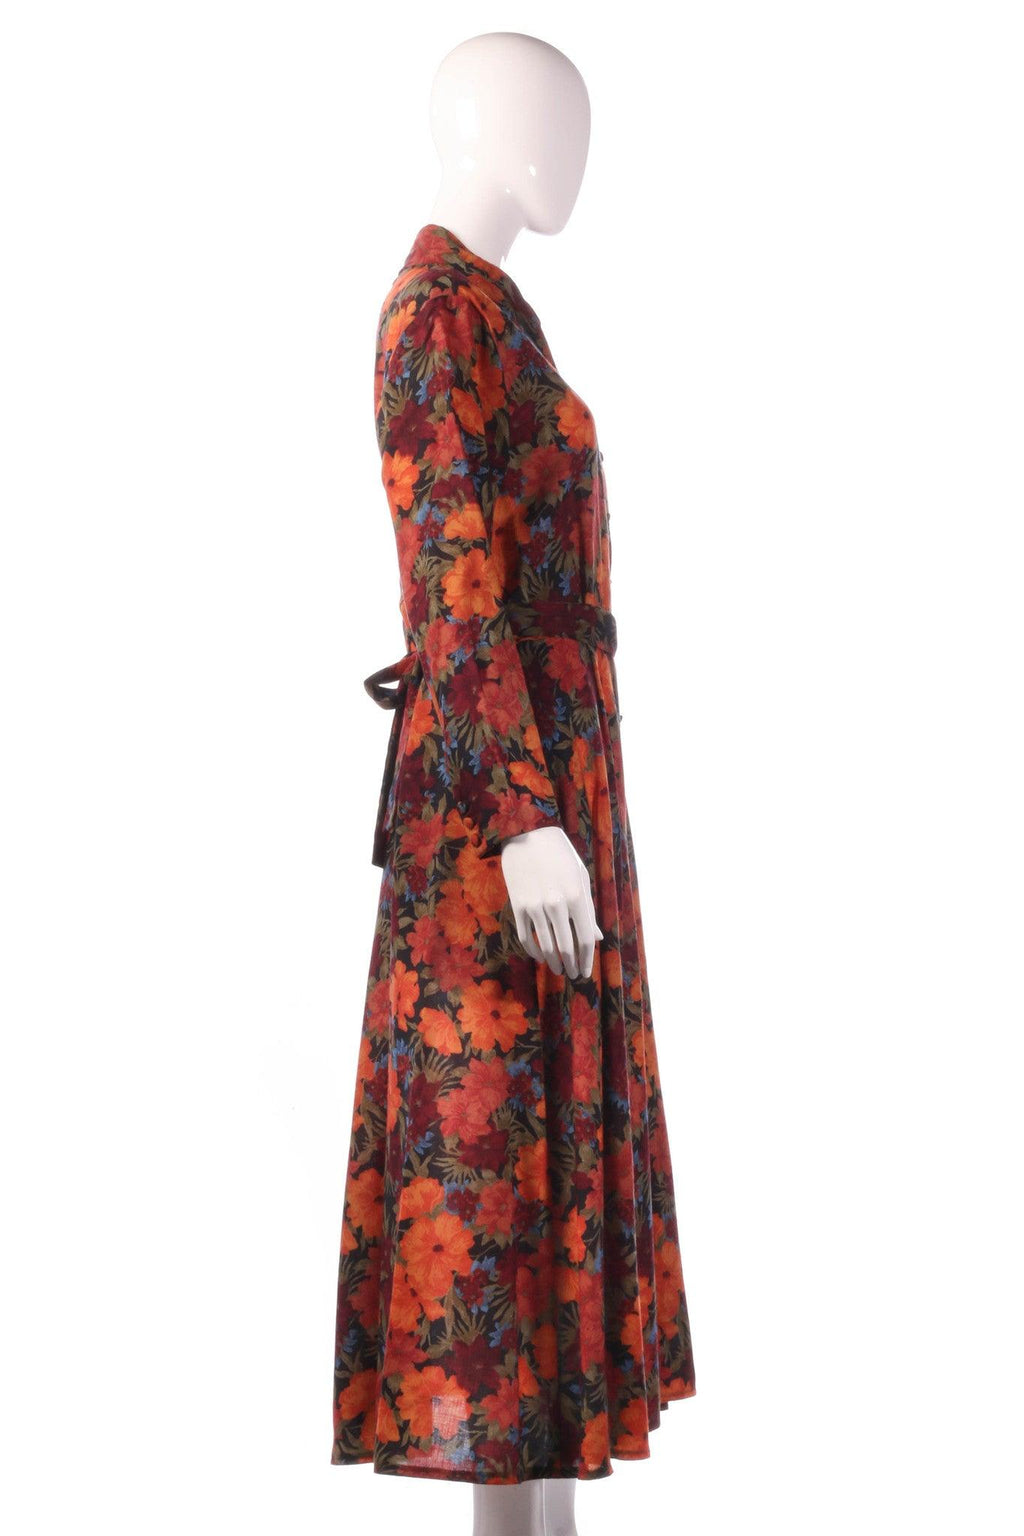 Liberty red dress with orange floral pattern side